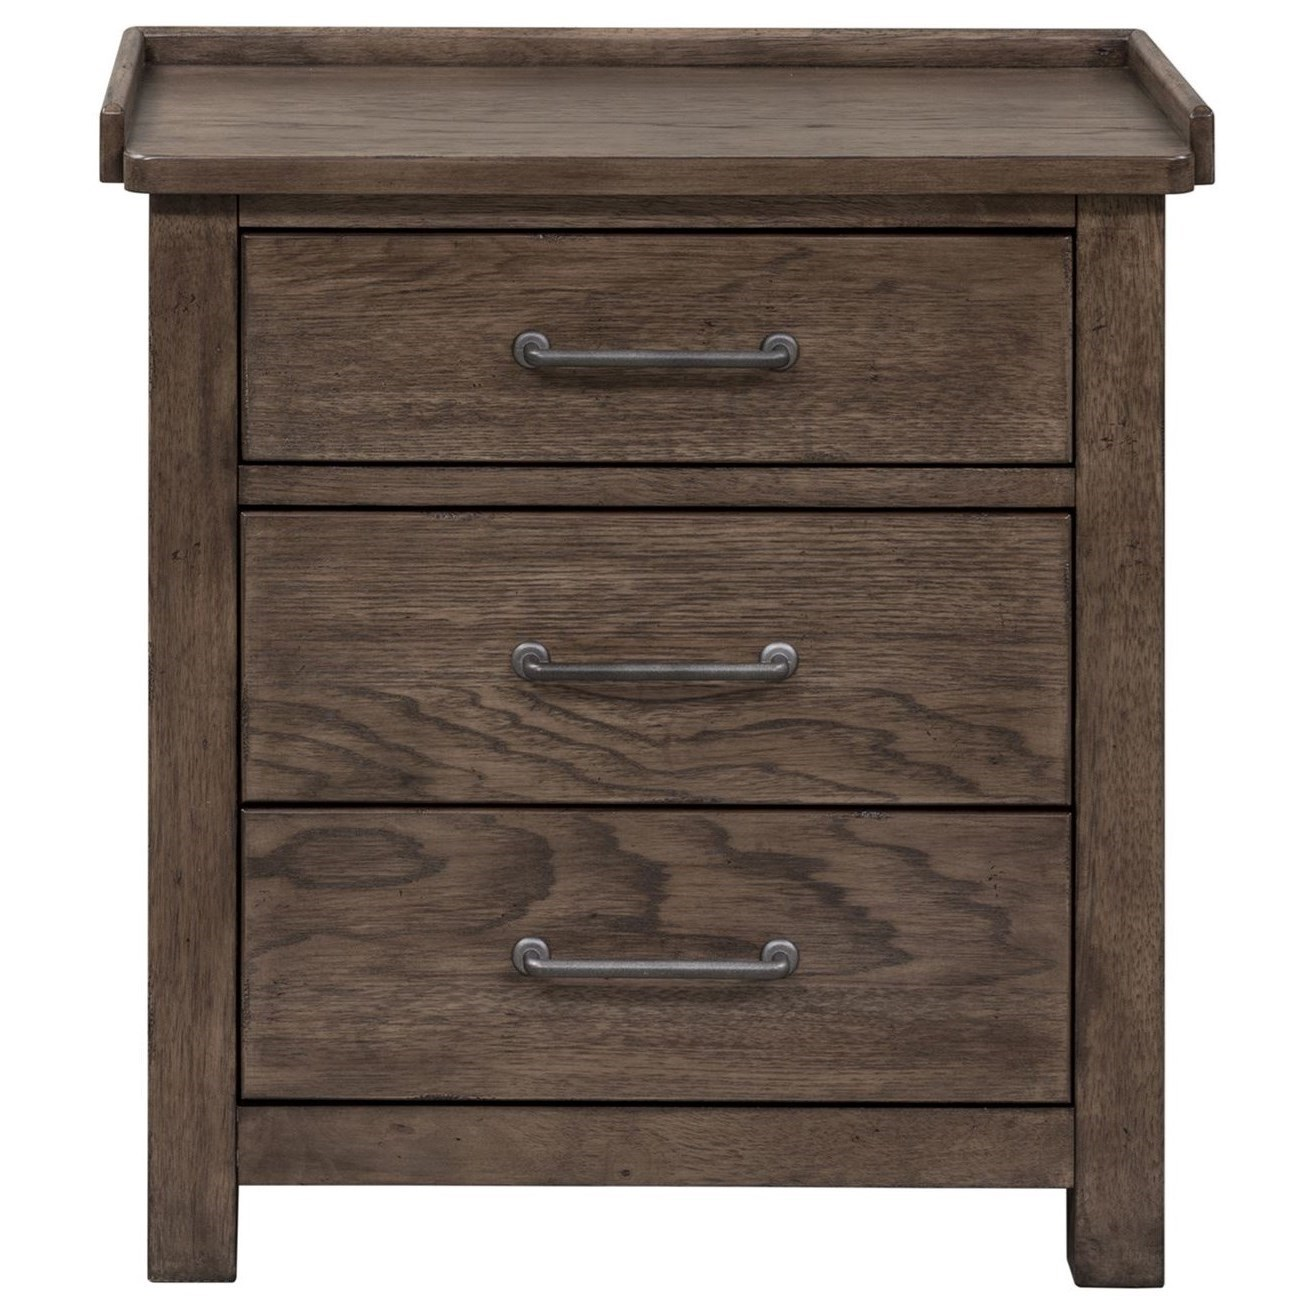 Bedroom Furniture Storage Night Stand Bedside End Table w// 3 Drawer Home Decor